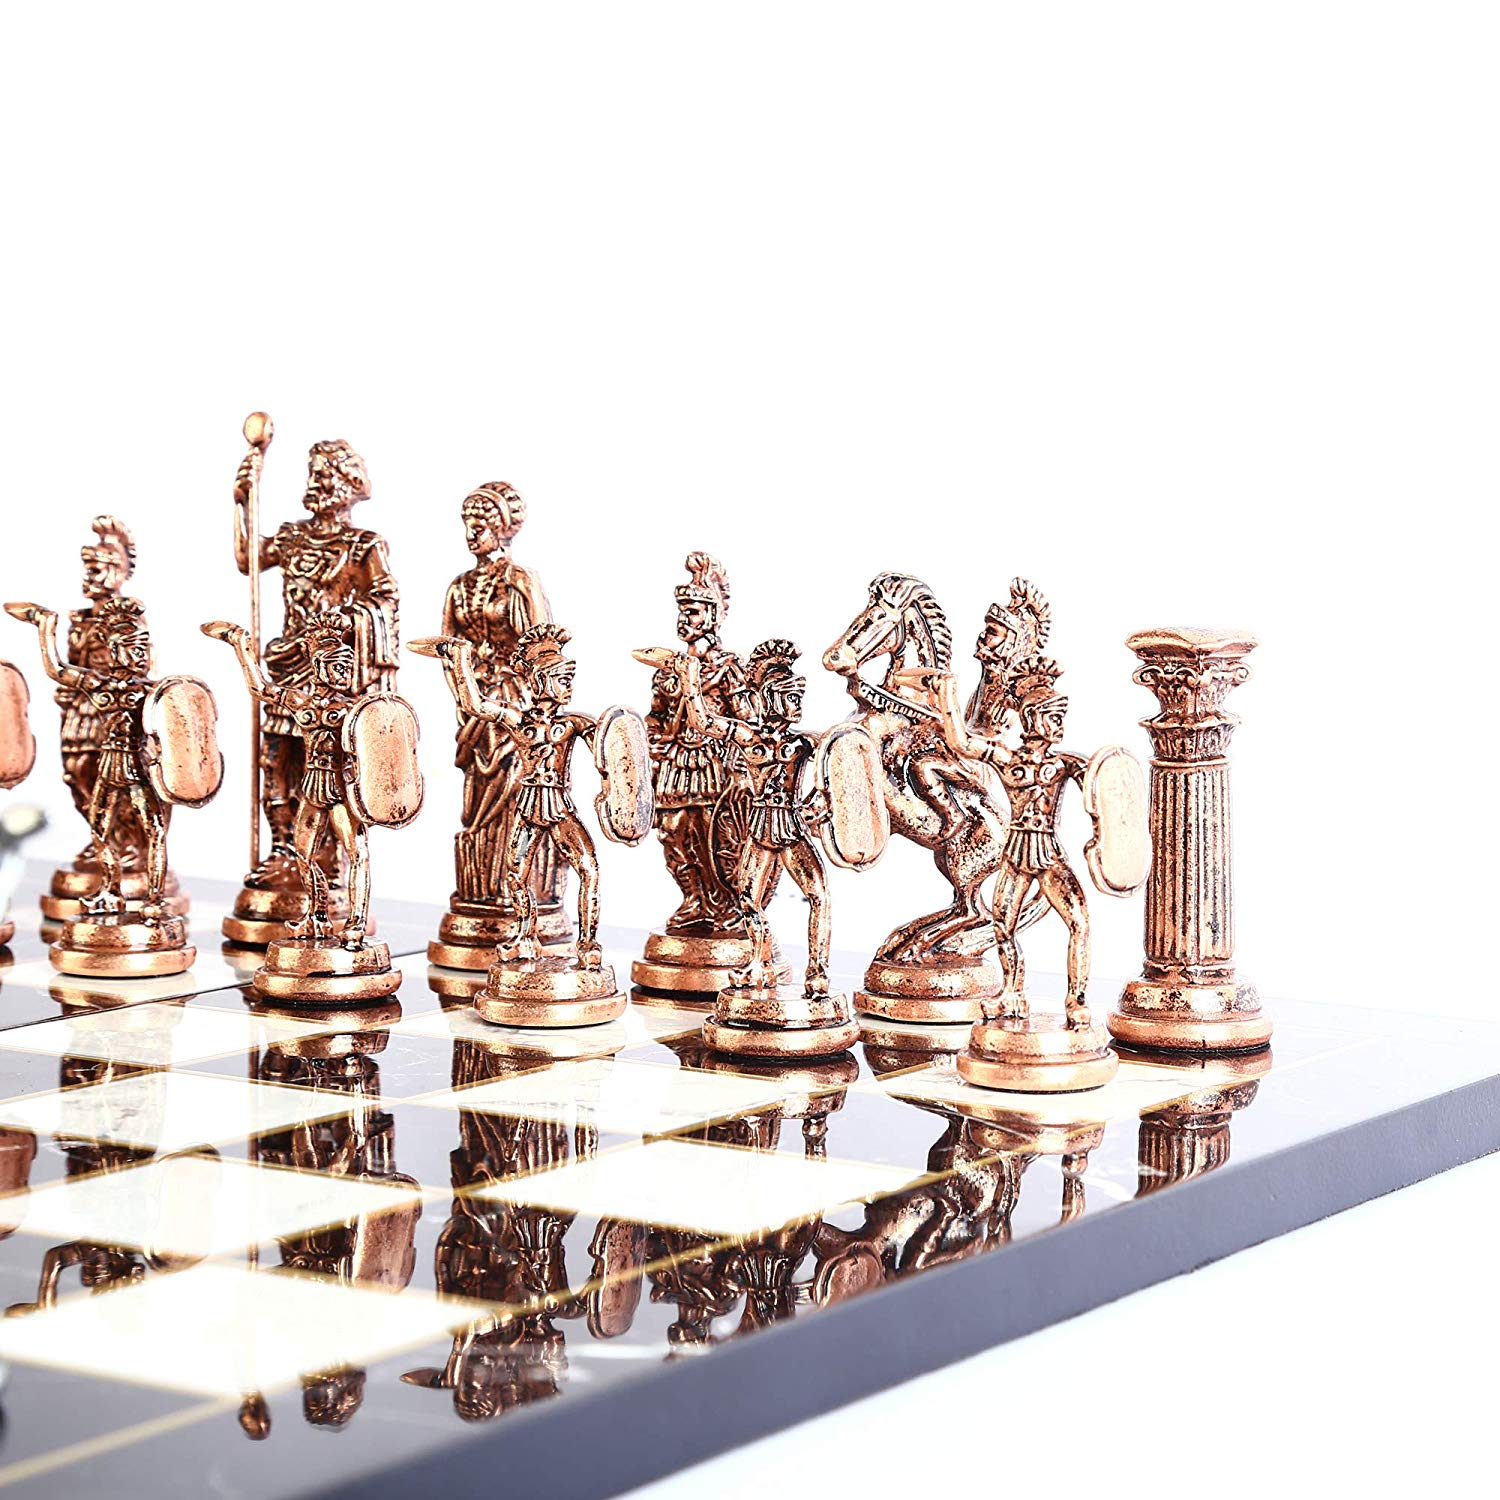 Historical Antique Copper Rome Figures Metal Chess Set for Adult,Handmade Pieces and Marble Design Wood Chess Board King 11 cm 3